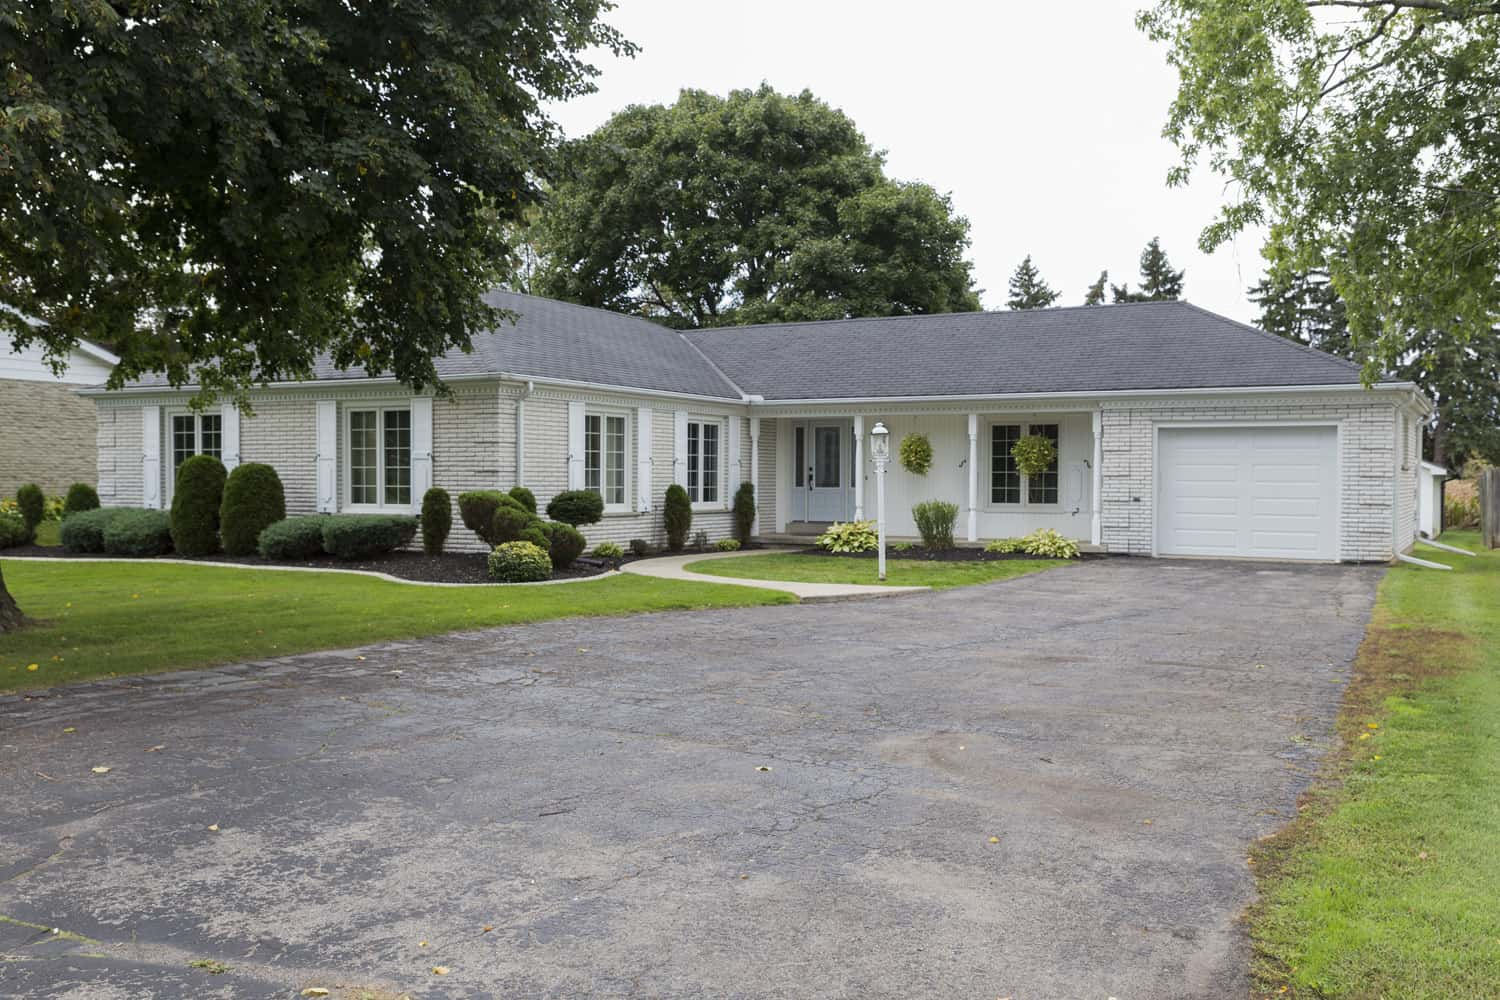 Ranch Style Home With Garage : Immaculate bedroom full bath ranch style home with